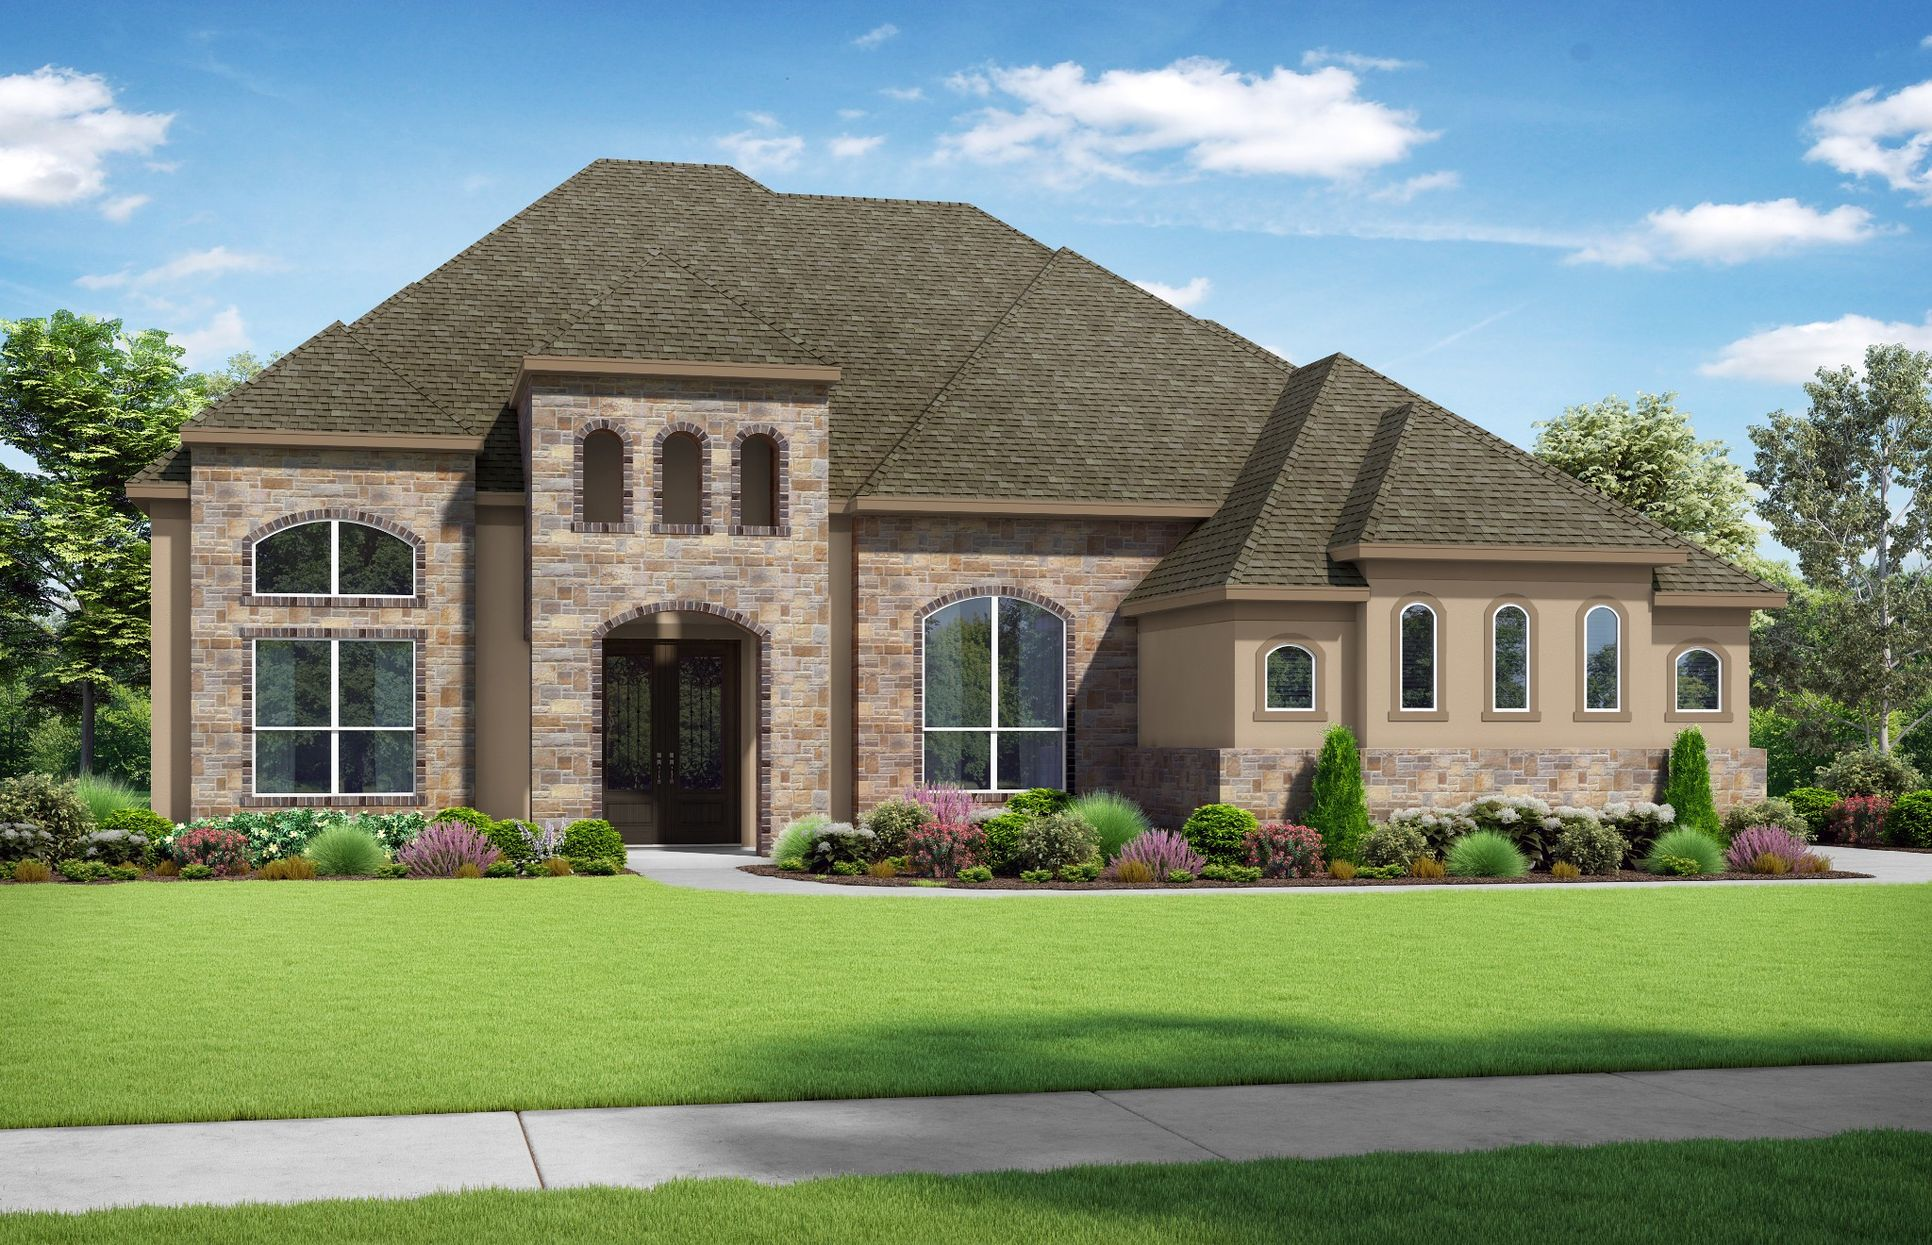 Images are artist renderings and will differ from the actual home built.:Elevation T